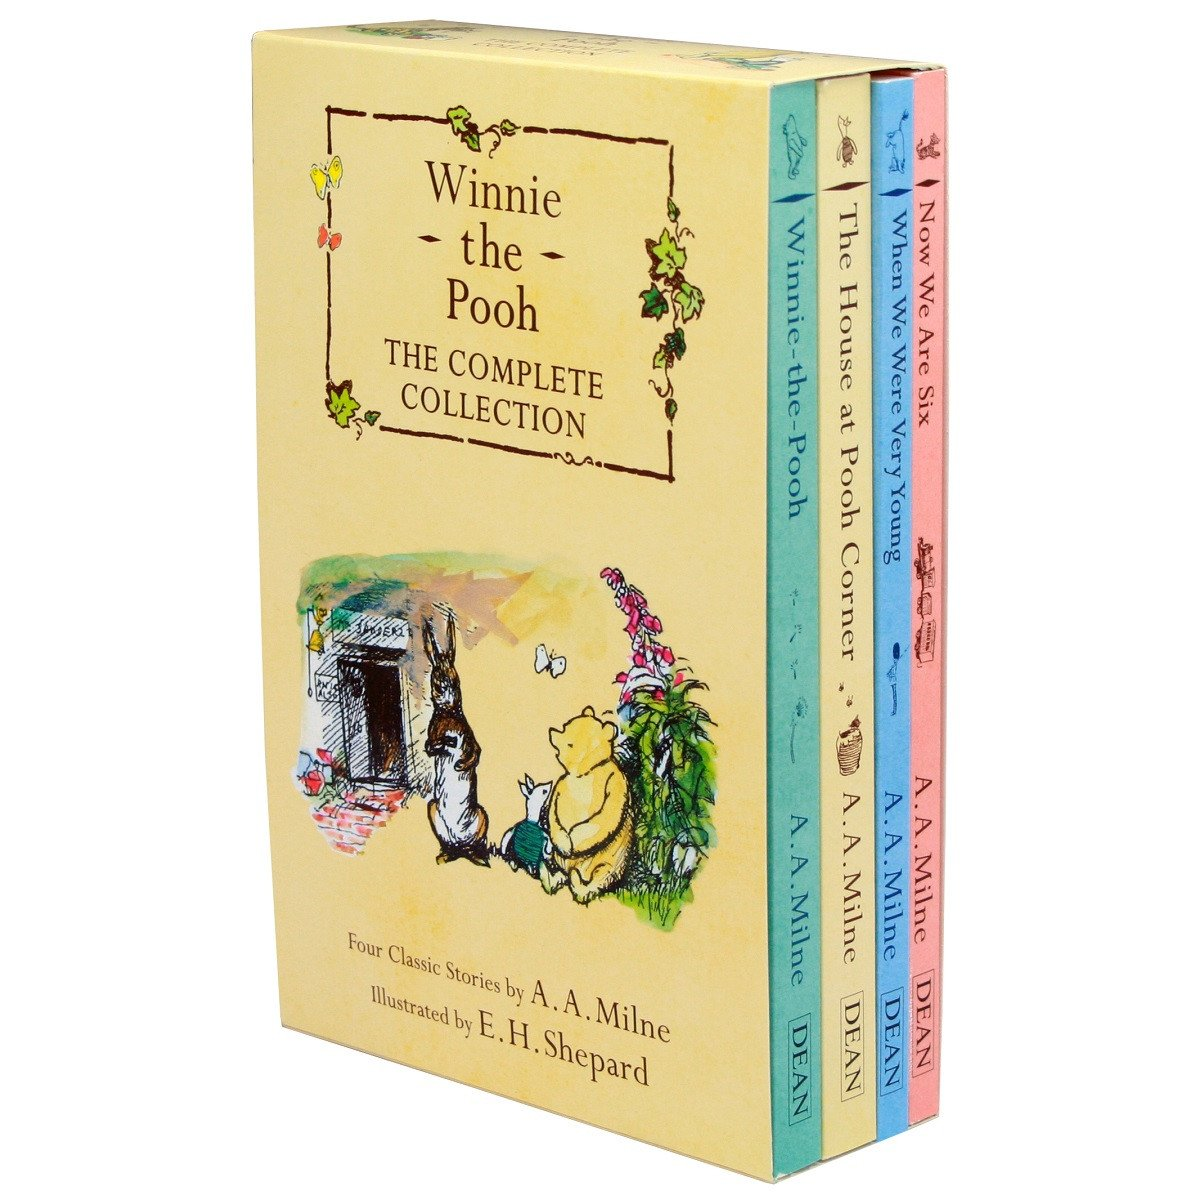 Winnie-the-Pooh Collection Slipcase